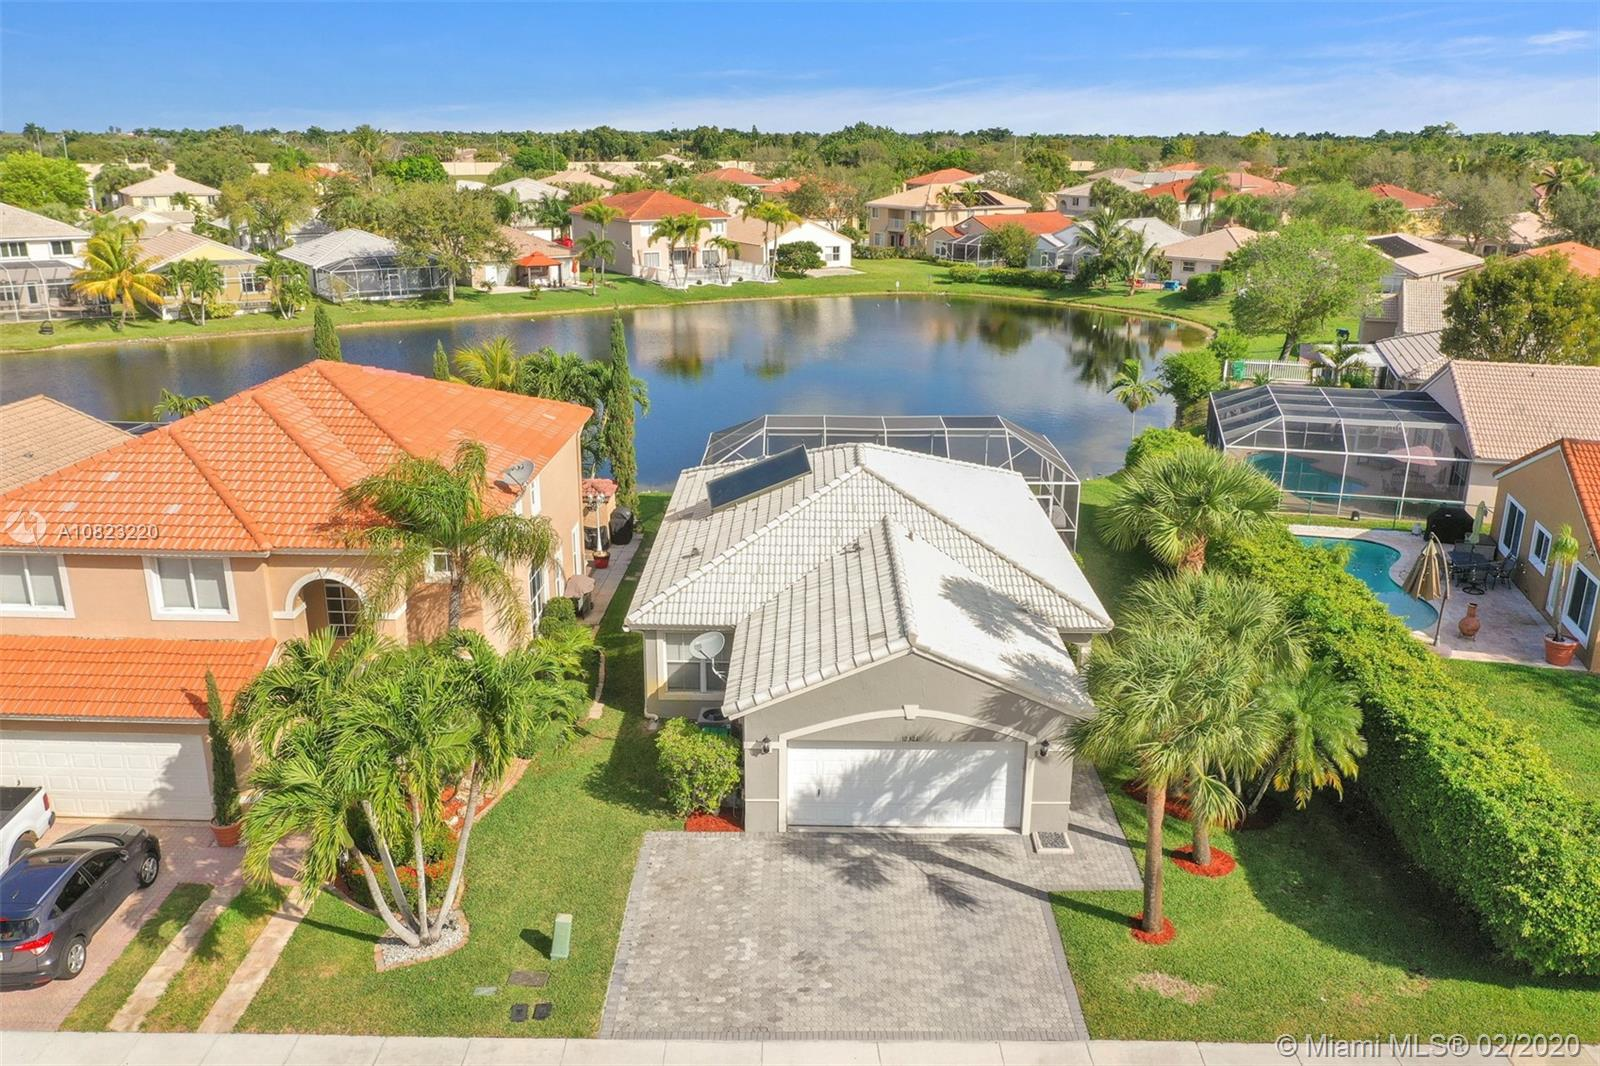 12321 NW 55th St, Coral Springs, FL 33076 - Coral Springs, FL real estate listing